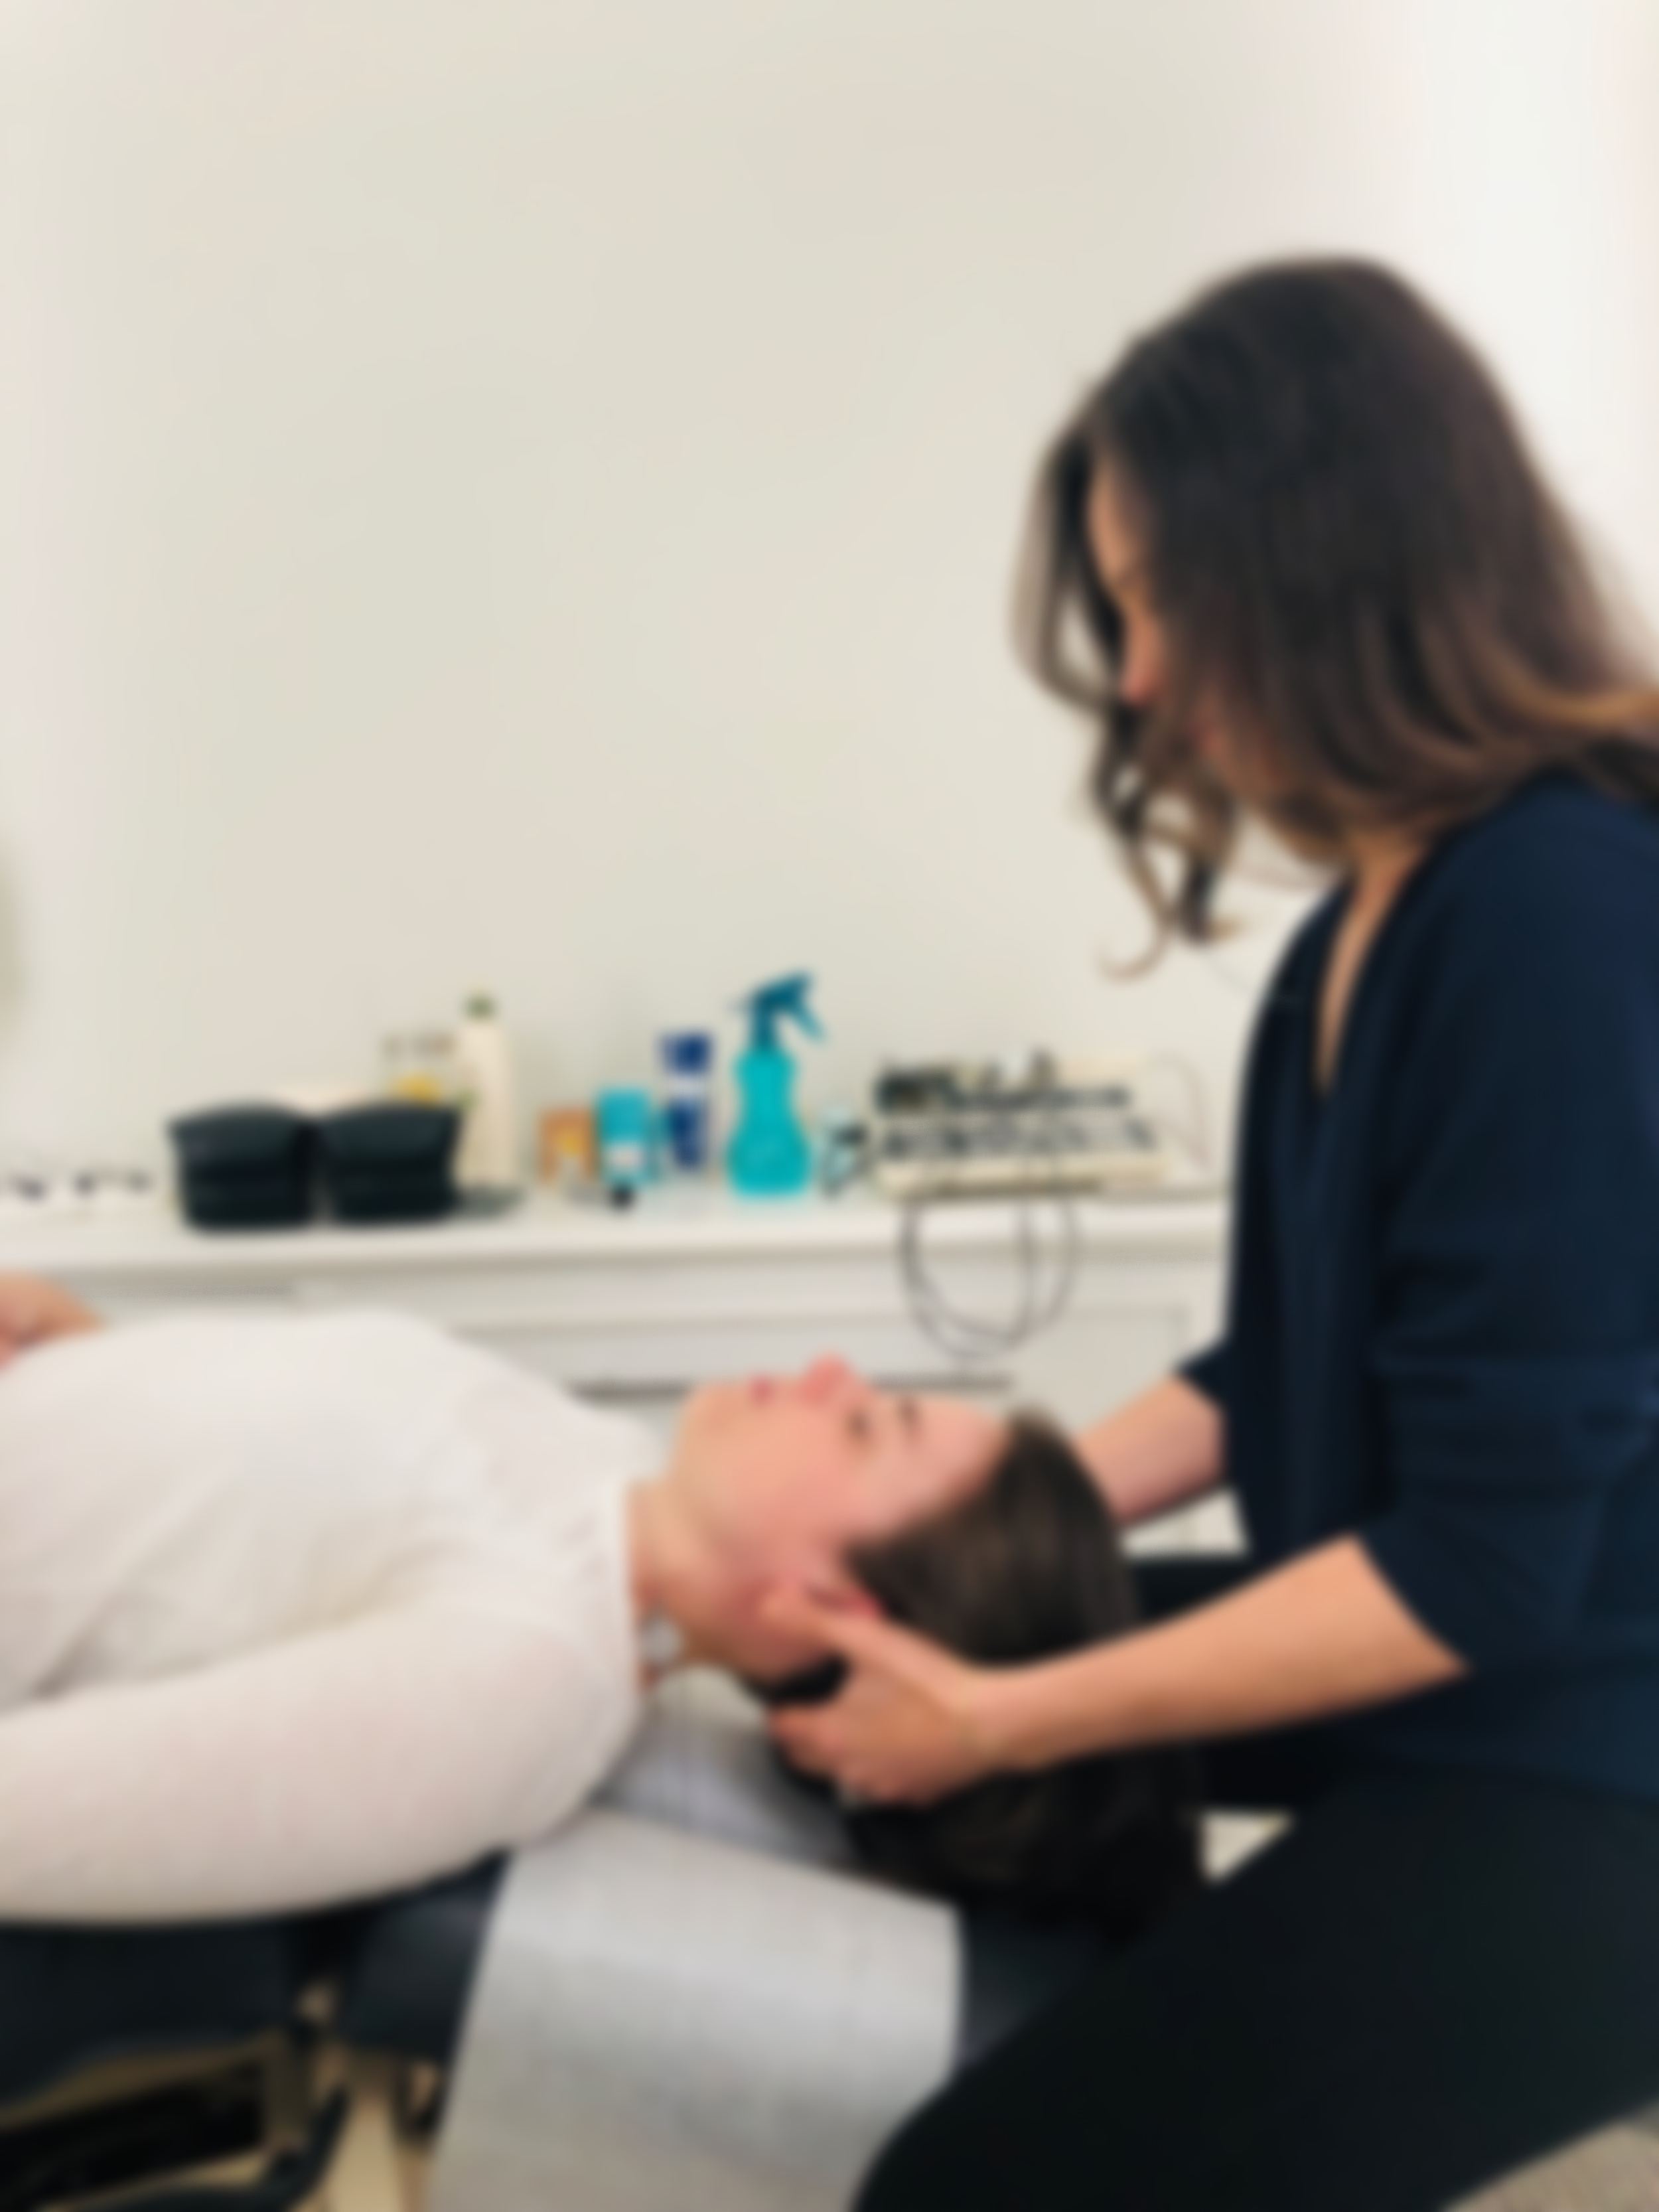 Chiropractic May Help With:Low BackPainBulging and Herniated DiscShoulder PainElbow PainHand PainKnee PainFoot and Ankle PainJoint Pain and StiffnessNerve impingementJaw Pain (TMJ)Muscle PainHeadachesFibromyalgia -